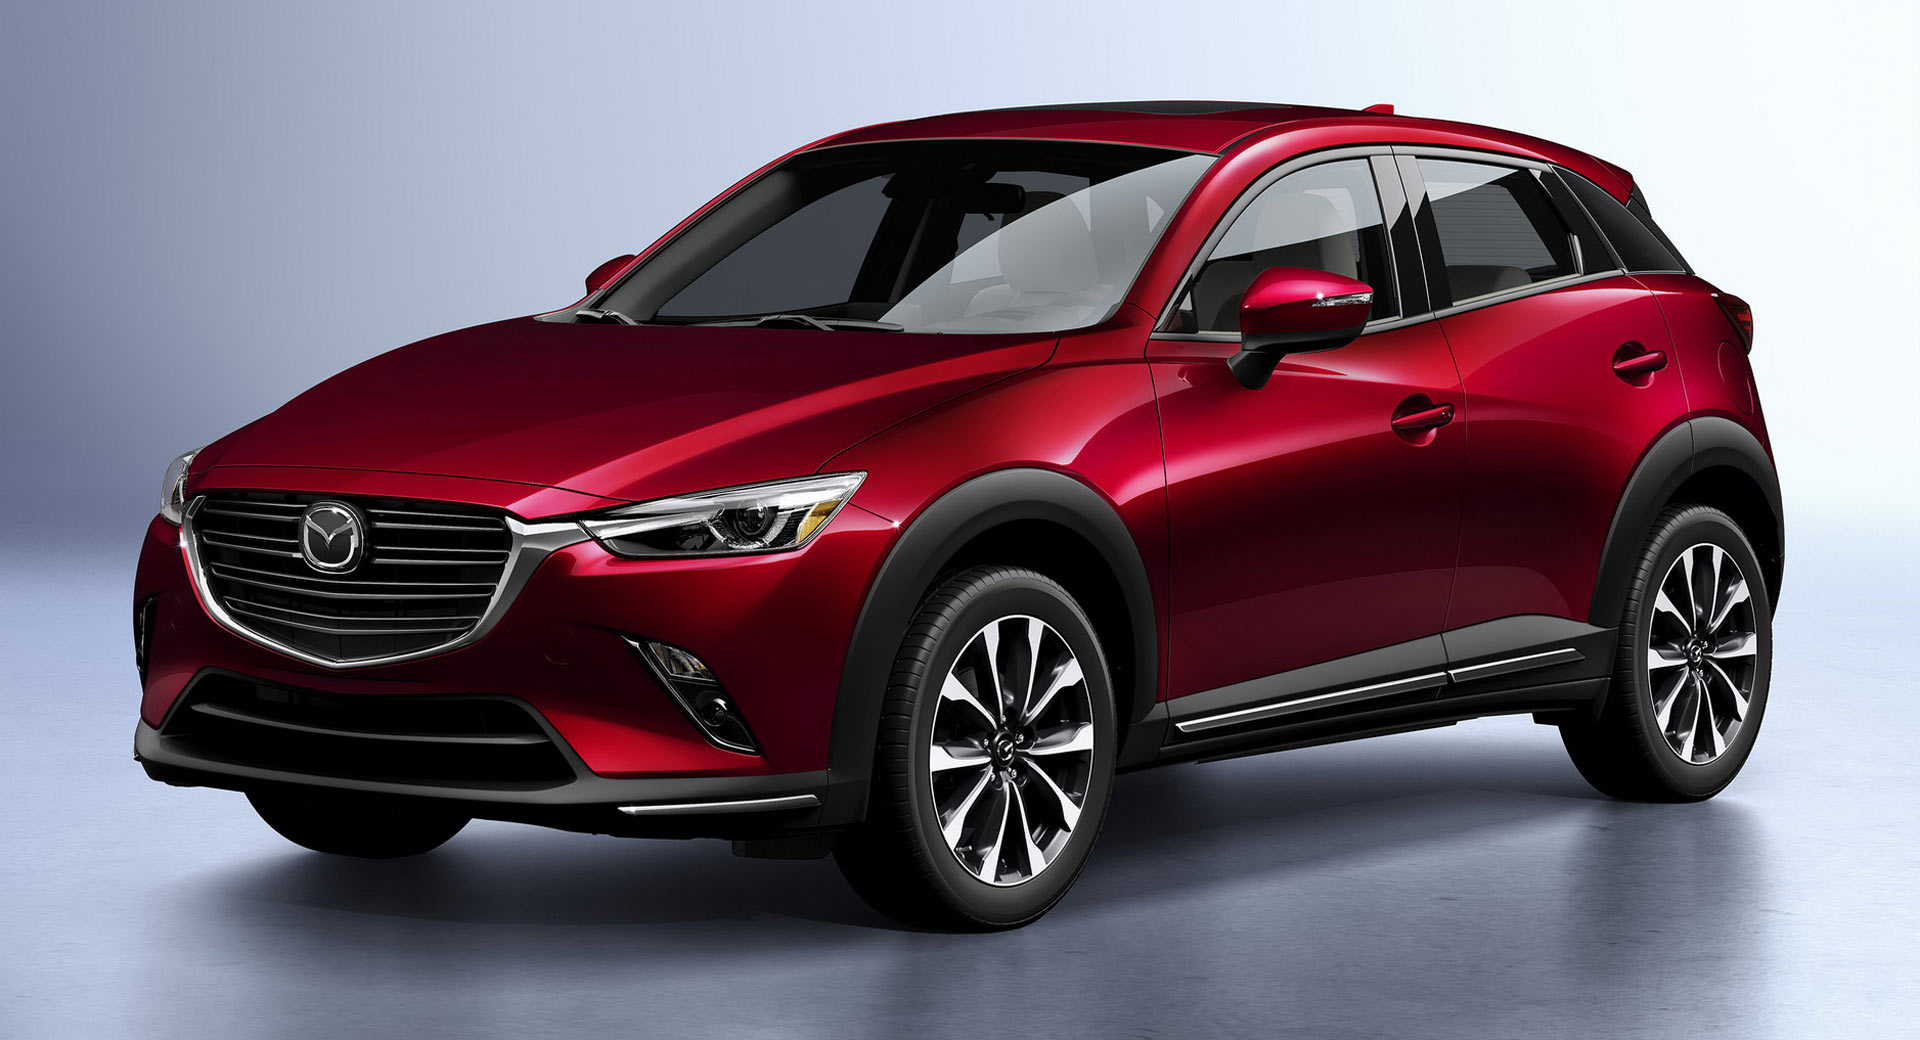 5 Mazda CX-5 Will Be Bigger, More Spacious And Practical